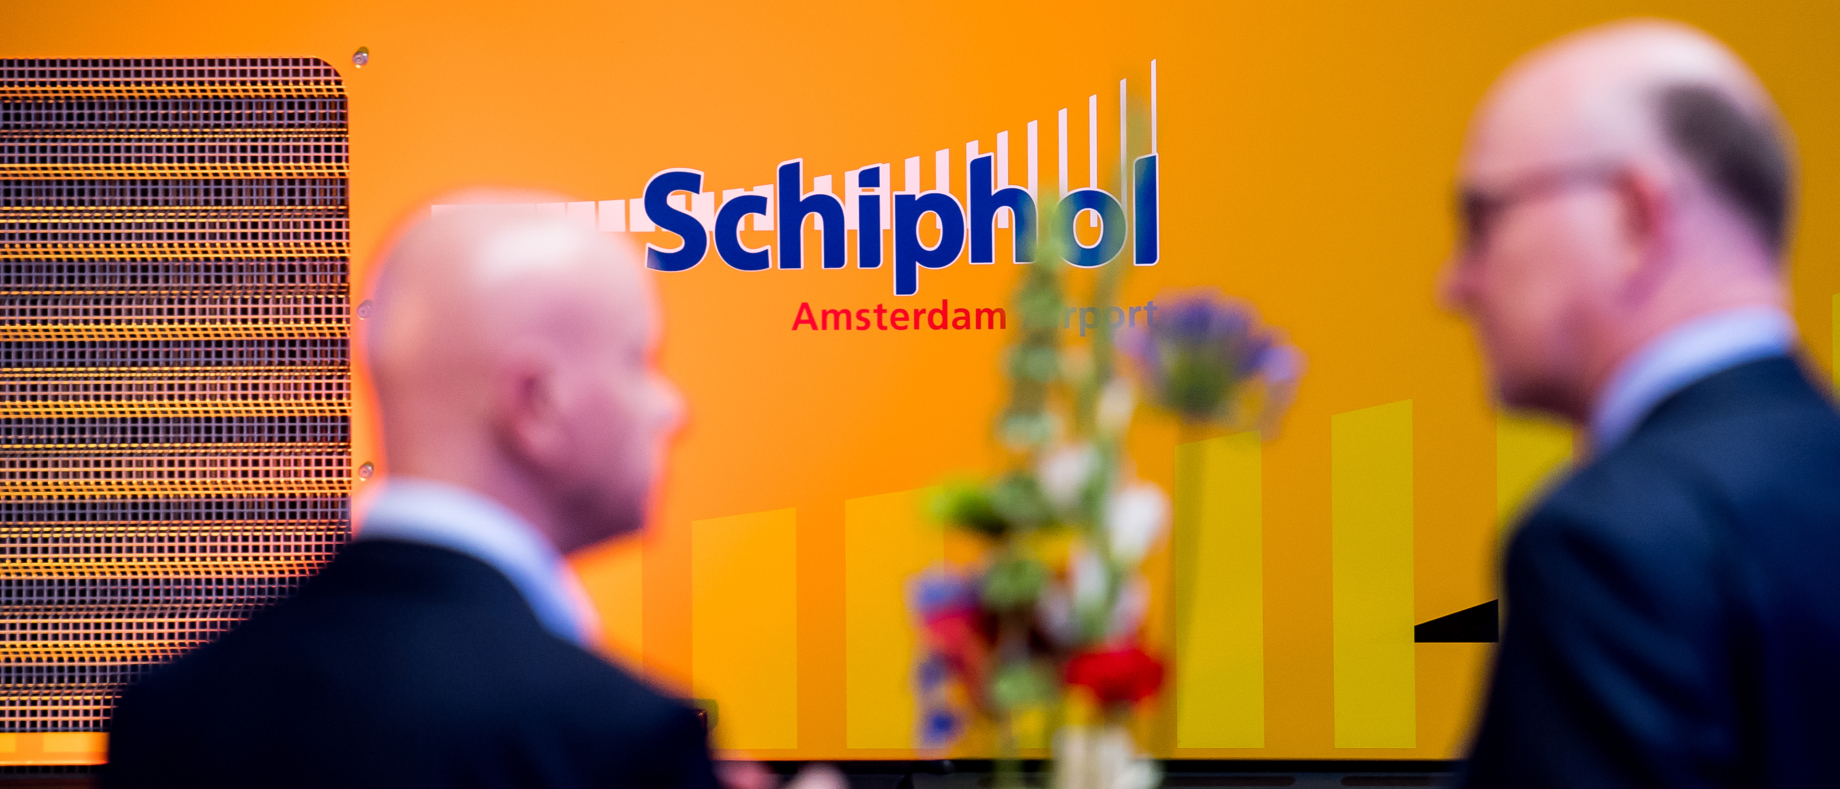 Schiphol events